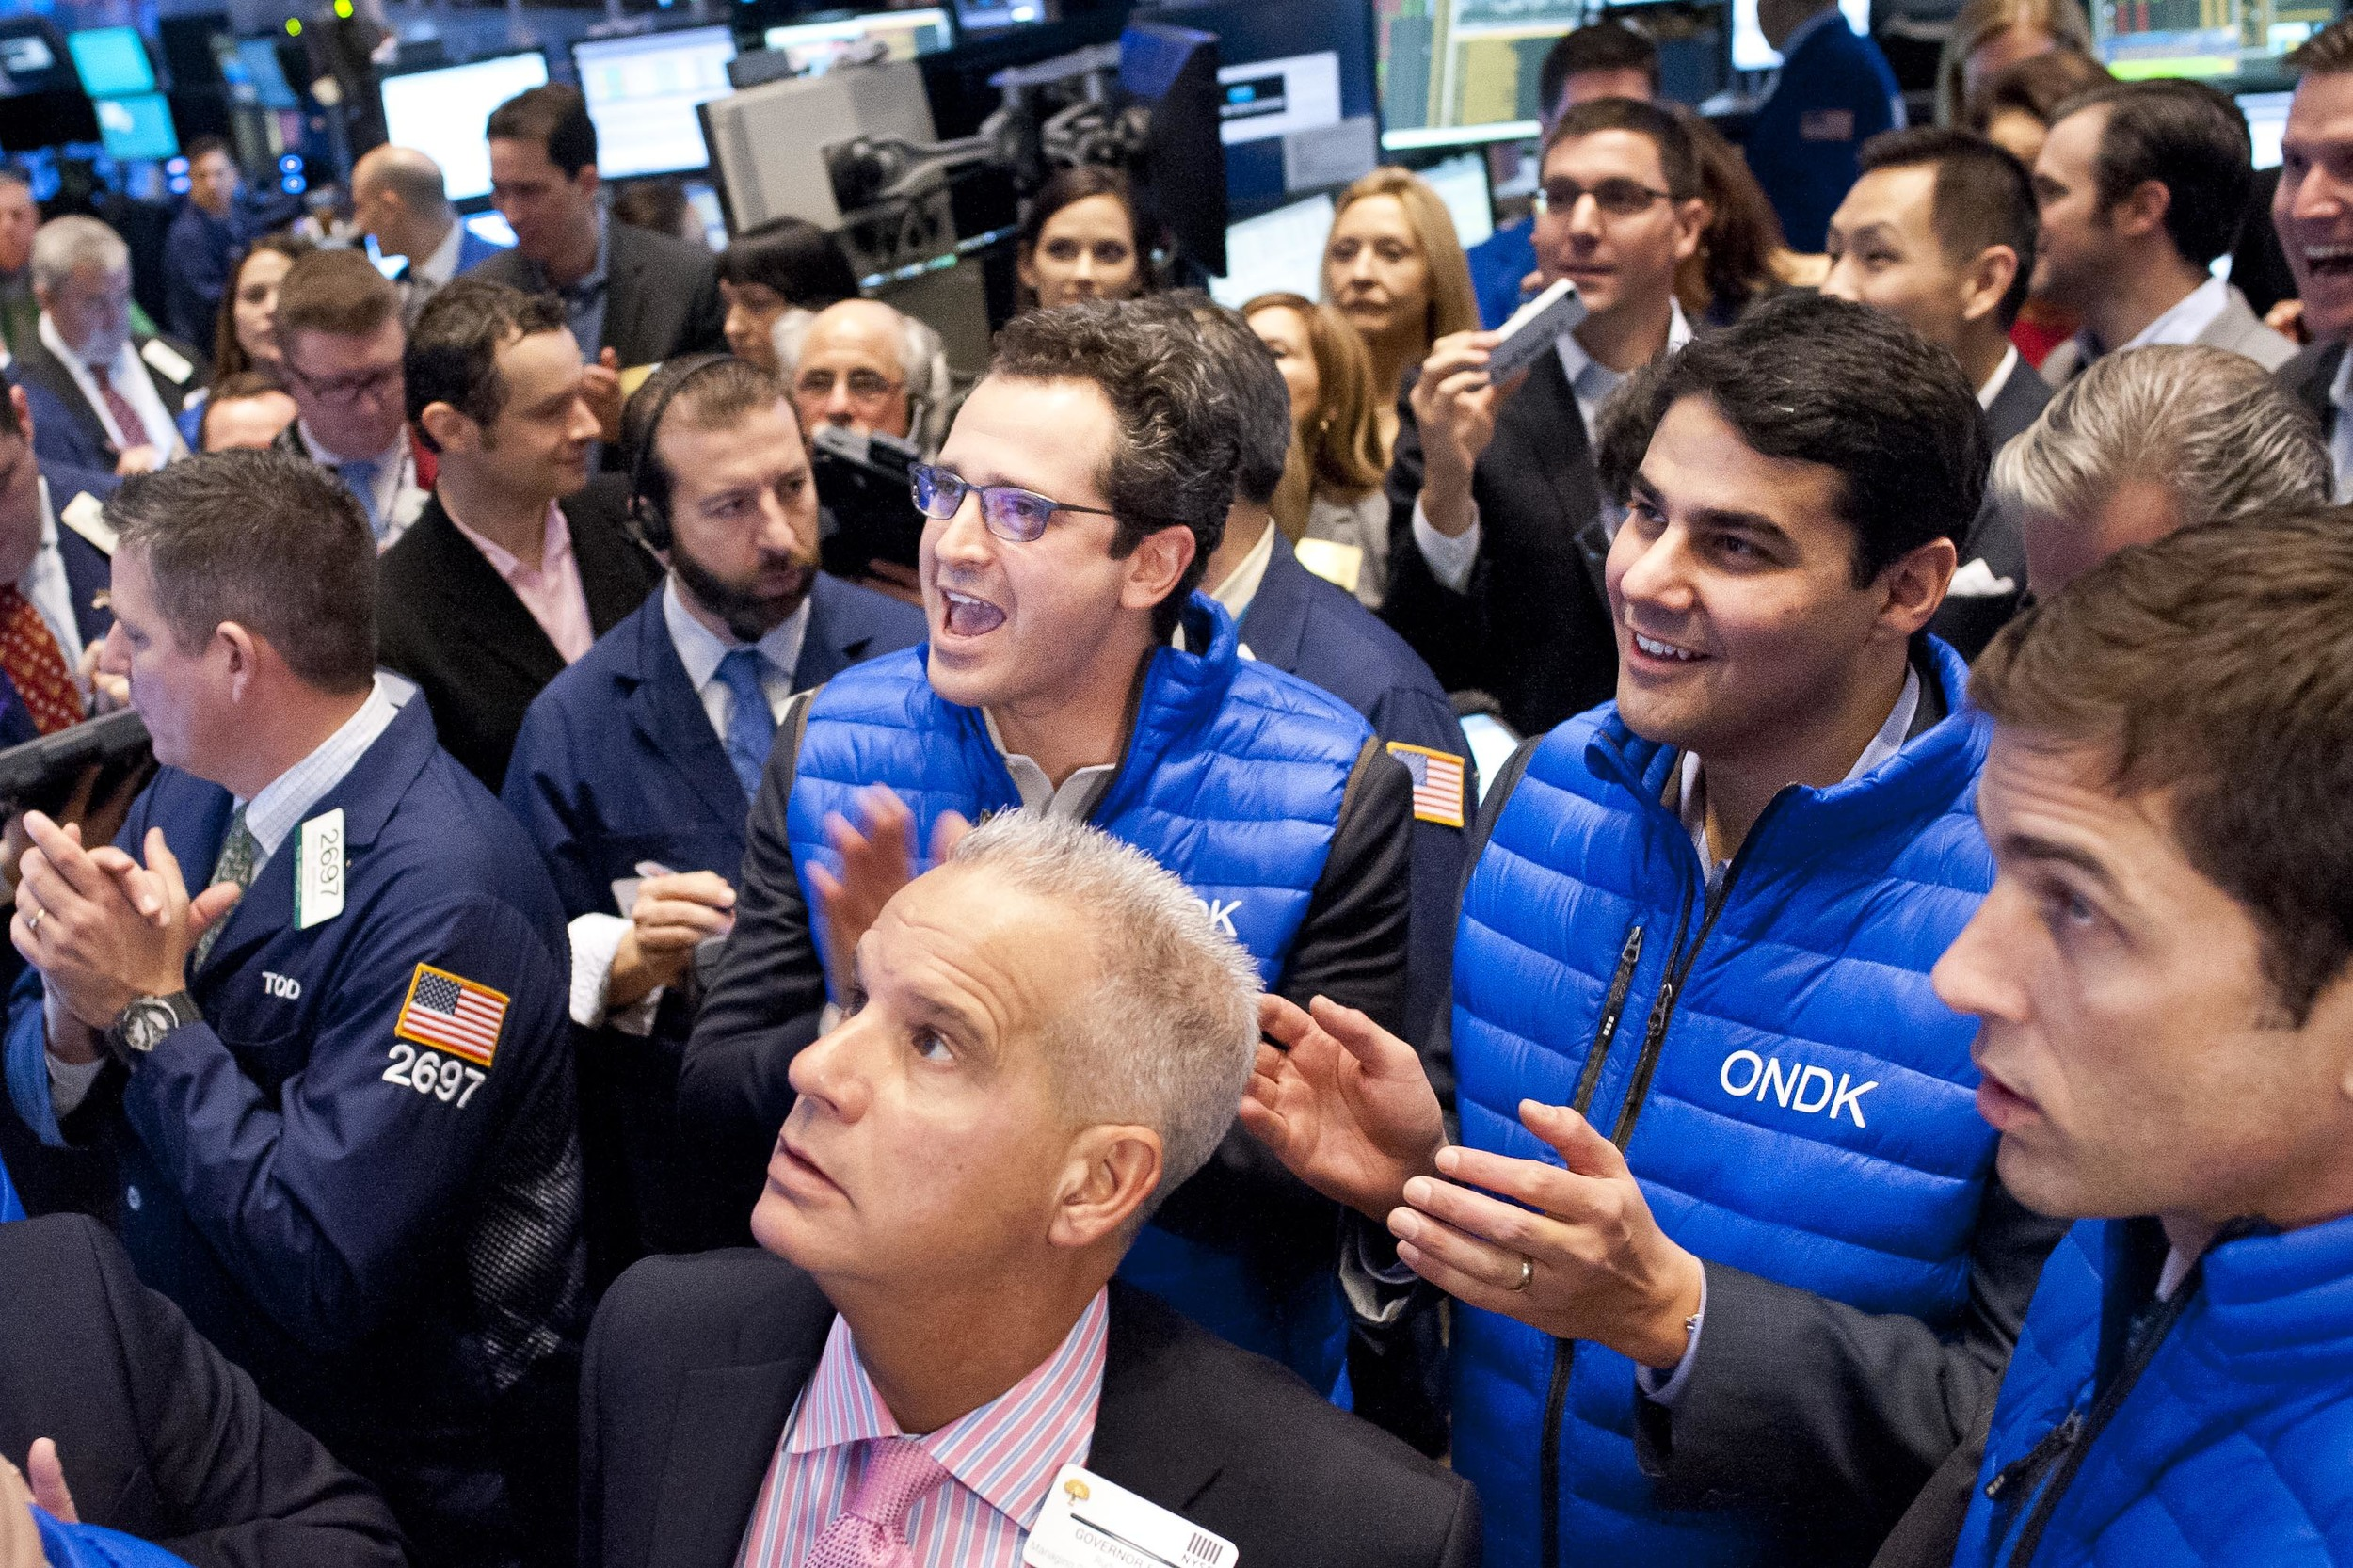 OnDeck CEO Noah Breslow (left) and CFO Howard Katzenberg (right) cheer on as their stock opens on December 17, 2014.